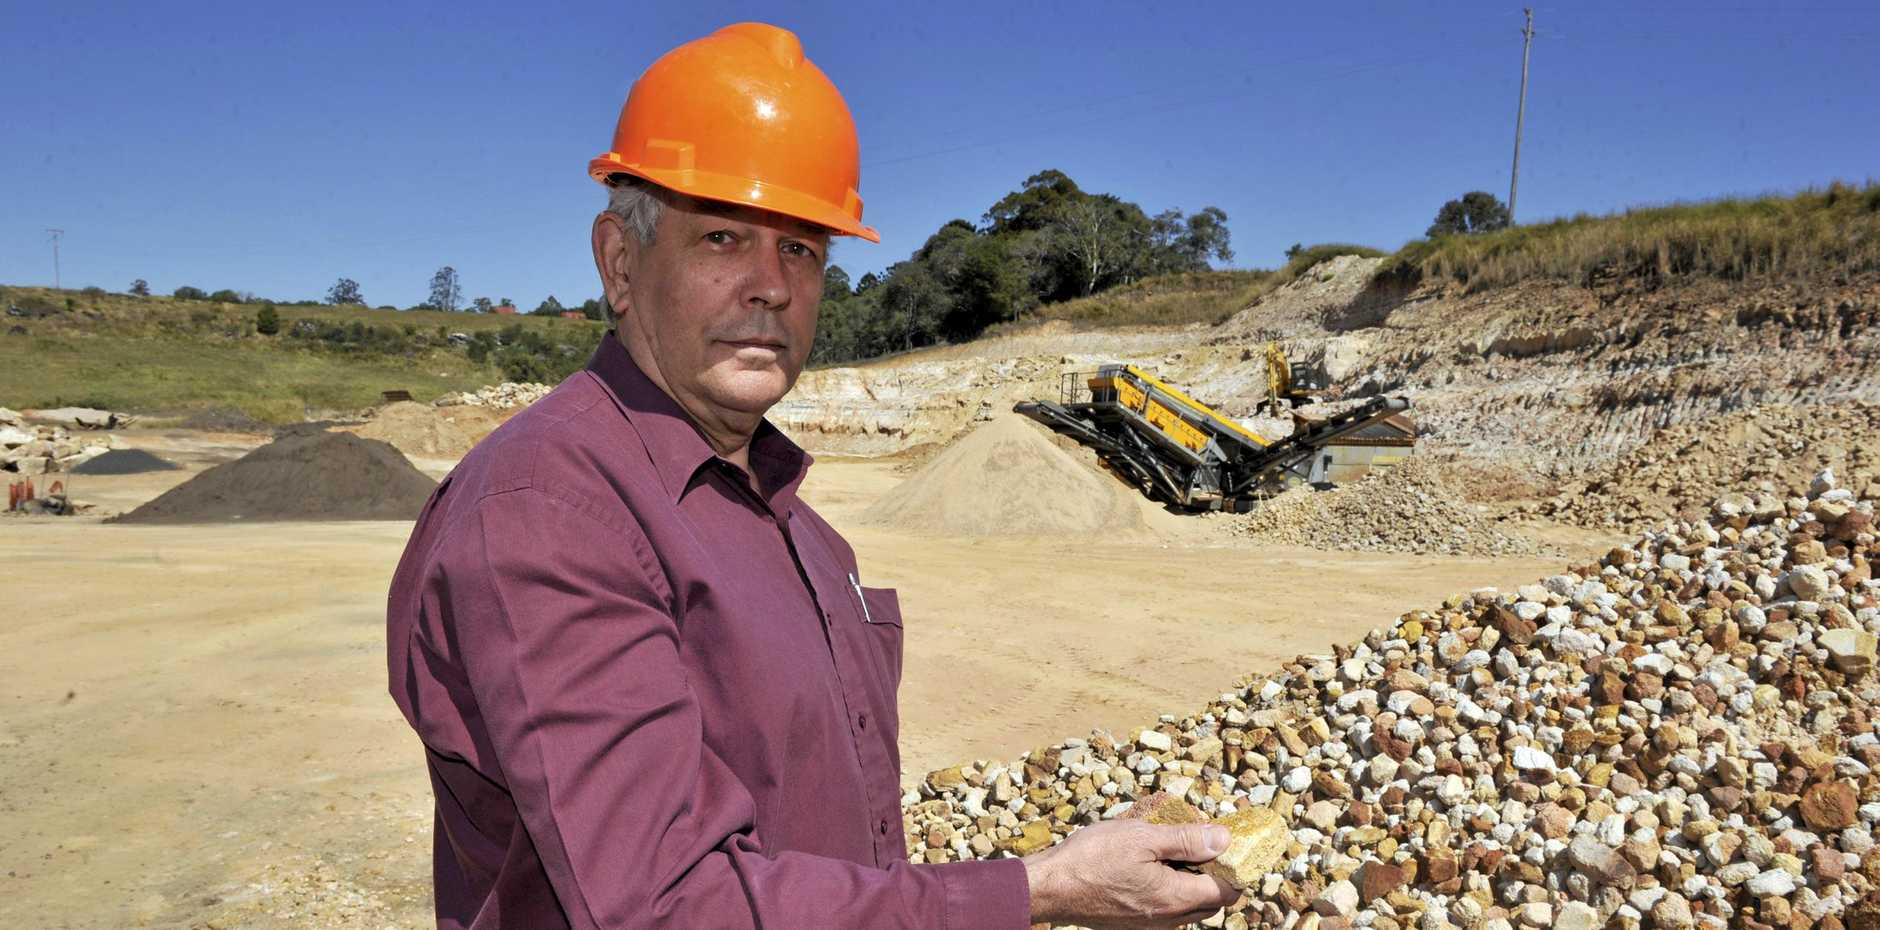 QUARRY SUSPENDS OPERATIONS: The NSW Department of Planning and Environment has confirmed that Champions Quarry owned by Jeff Champion, has informed them they will be suspending operations at the Wyrallah Road, Tucki, worksite.